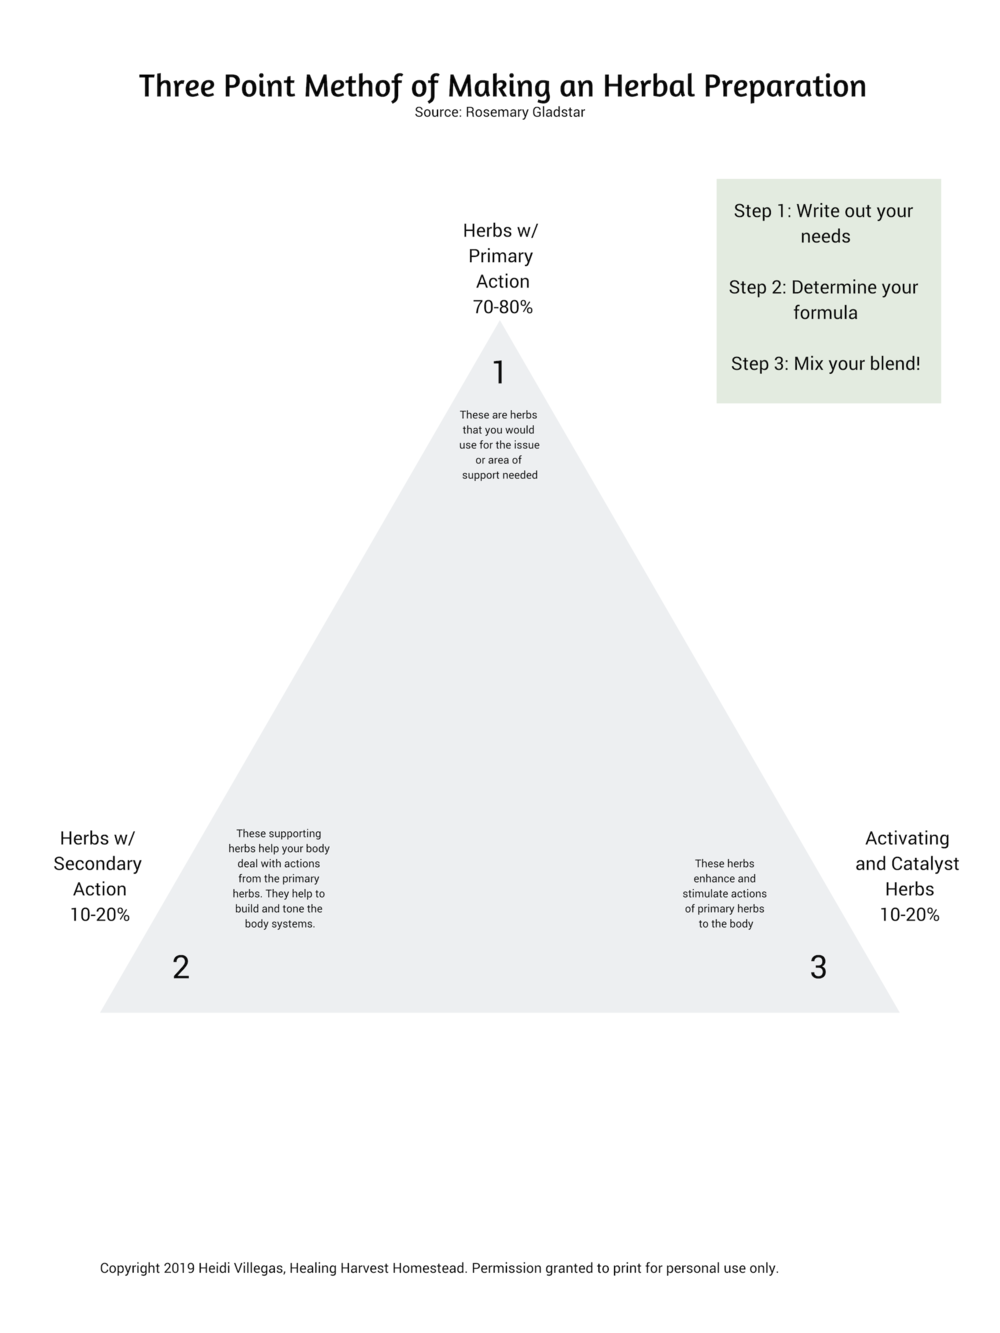 PDF Herbal Medicine Formulating Triangle.png